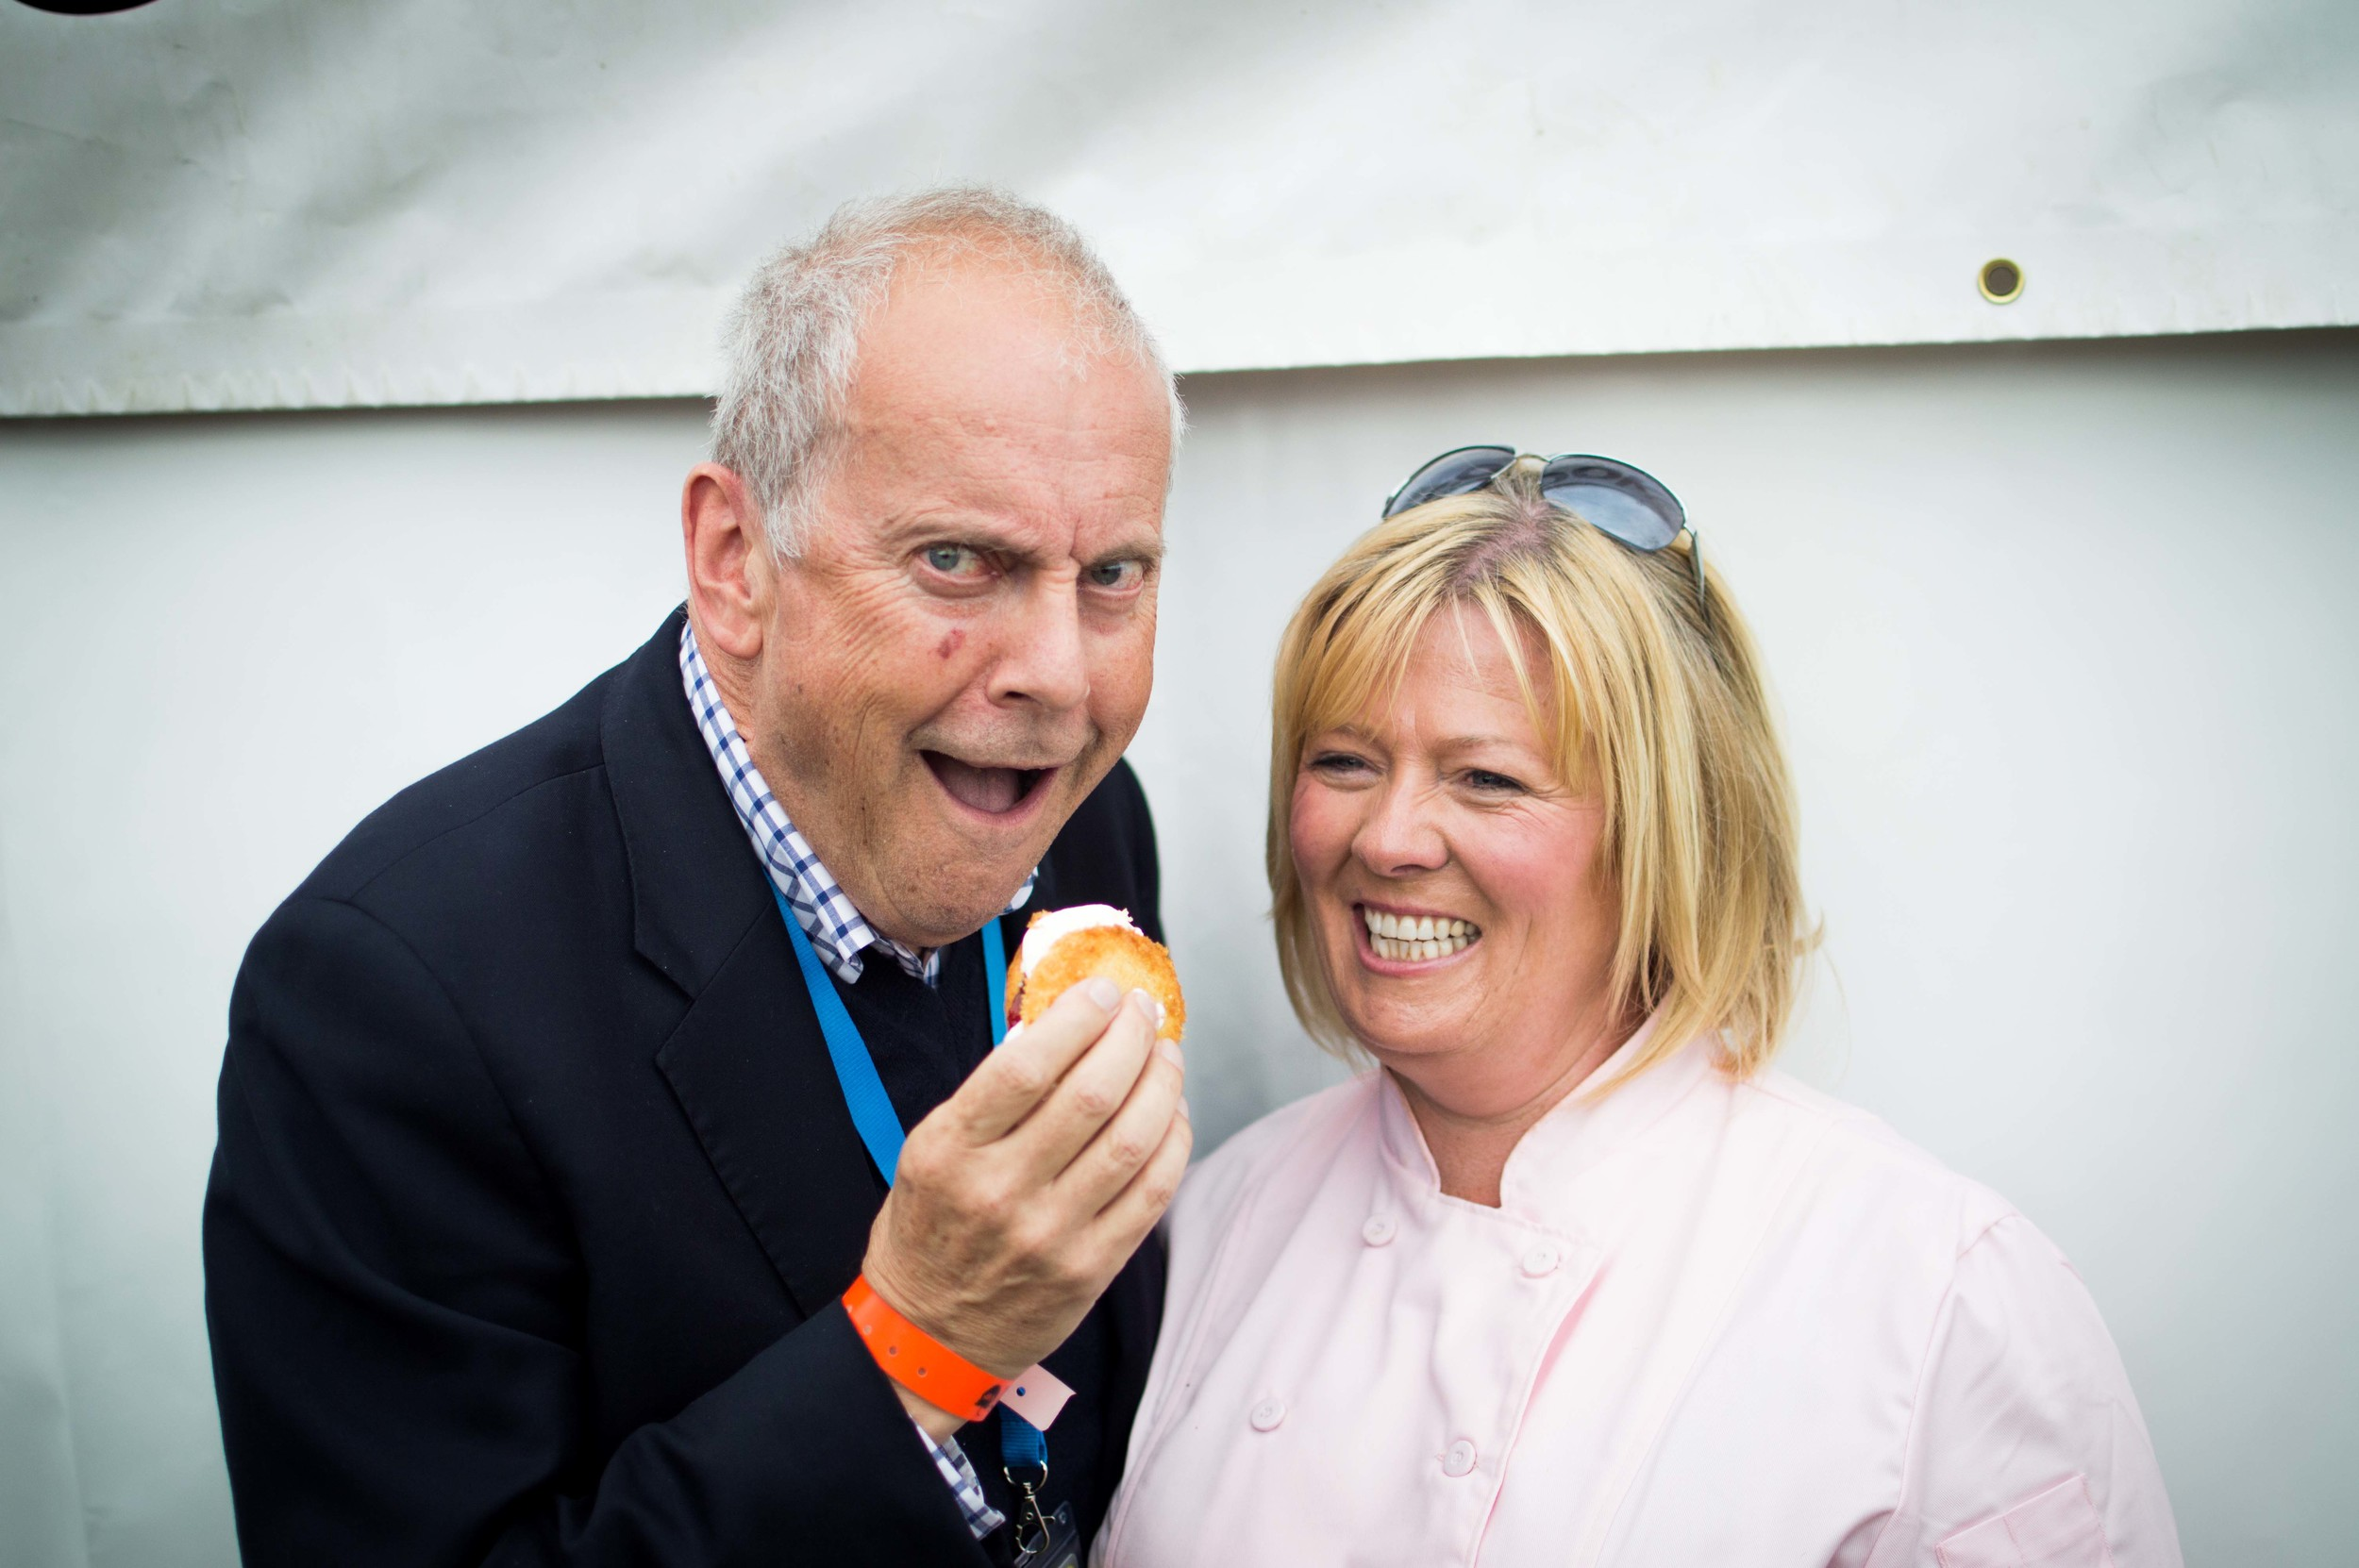 Cheeky! Gyles Brandreth shares a mini Victoria sponge with Jacqueline O'Donnell in Edinburgh